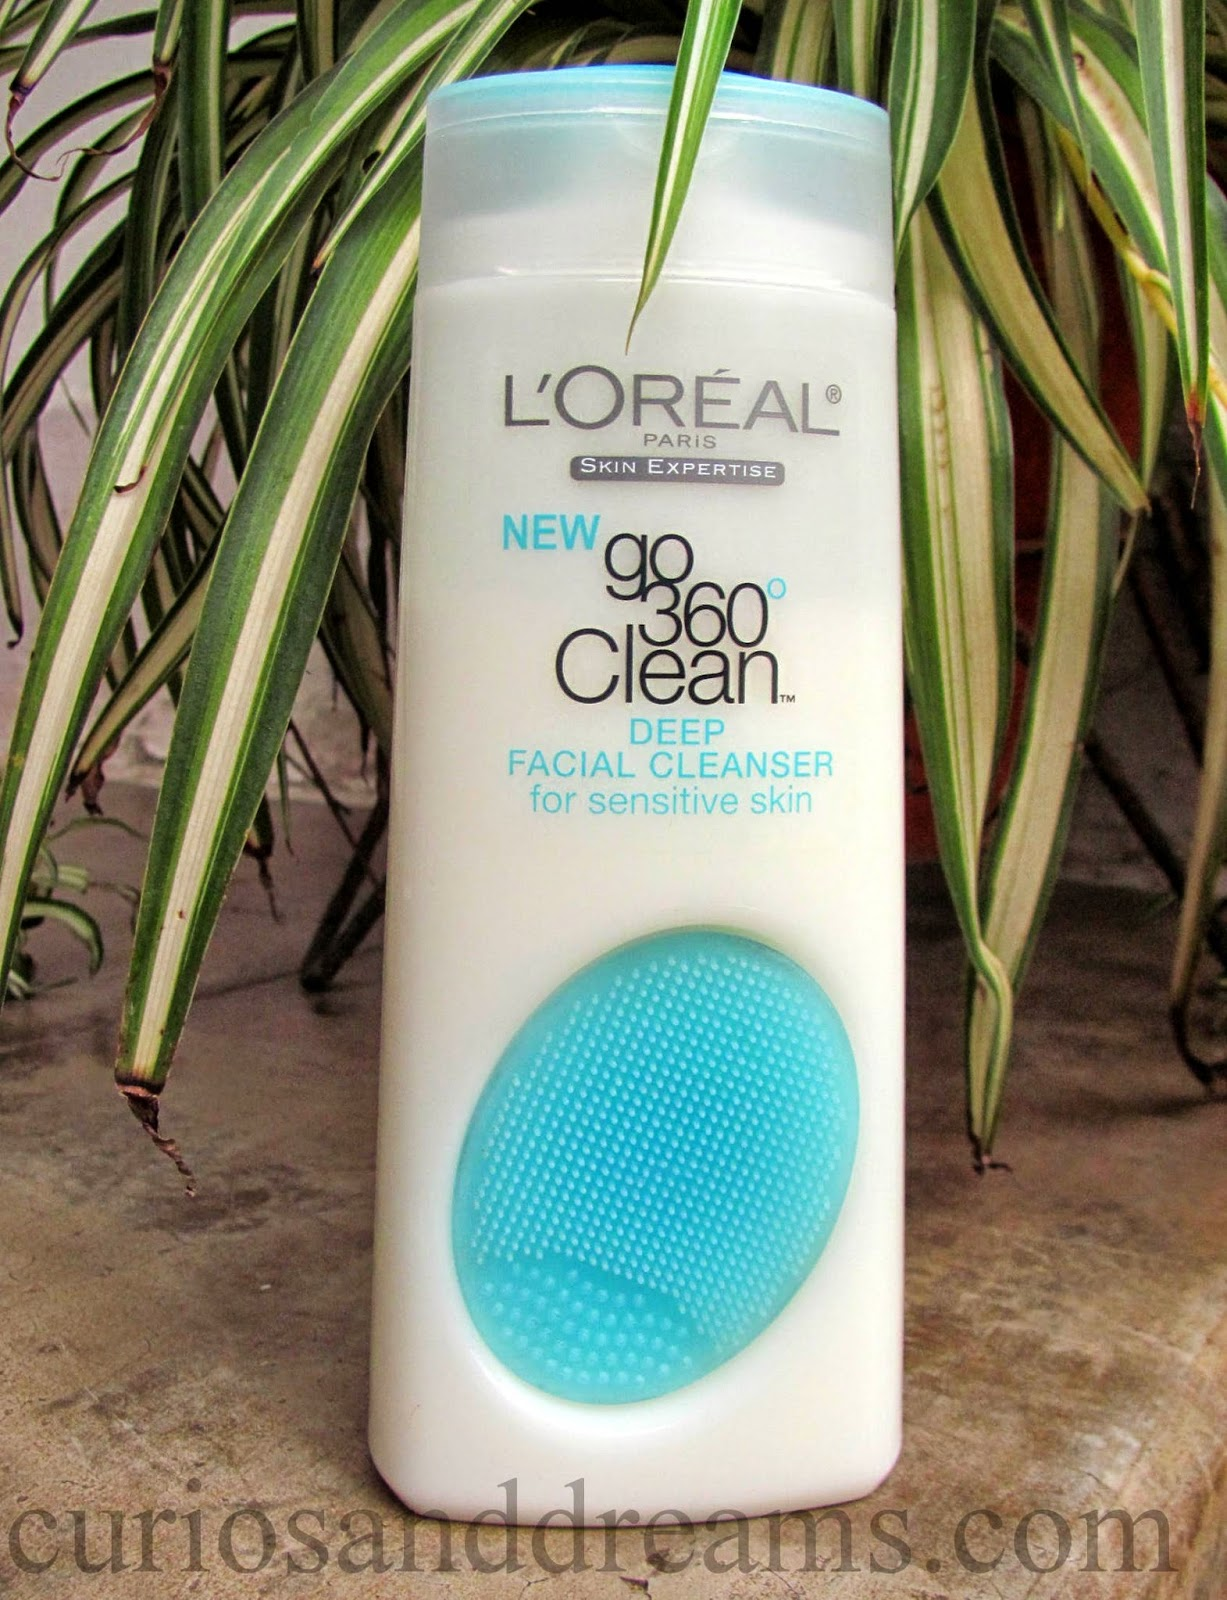 L'Oreal Go 360 Clean Deep Facial Cleanser Sensitive Skin Review